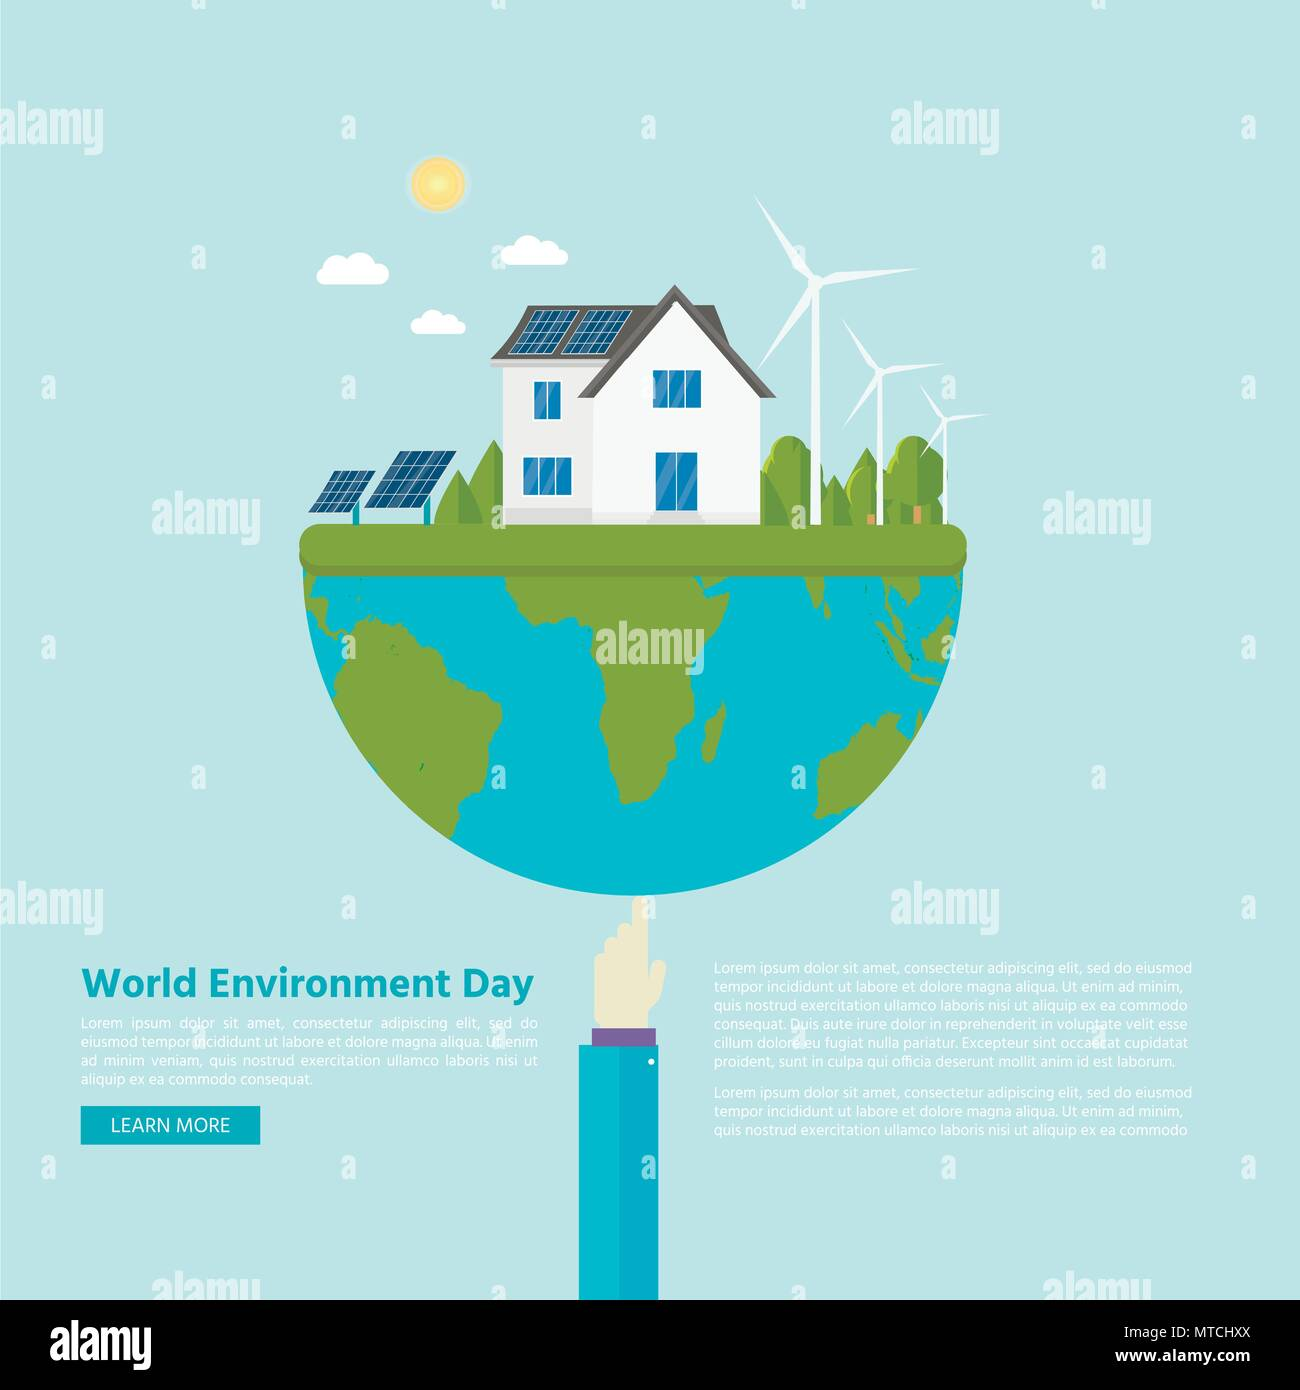 Environmental Concept Earthfriendly Landscapes: Happy World Environment Day Postcard With Green City